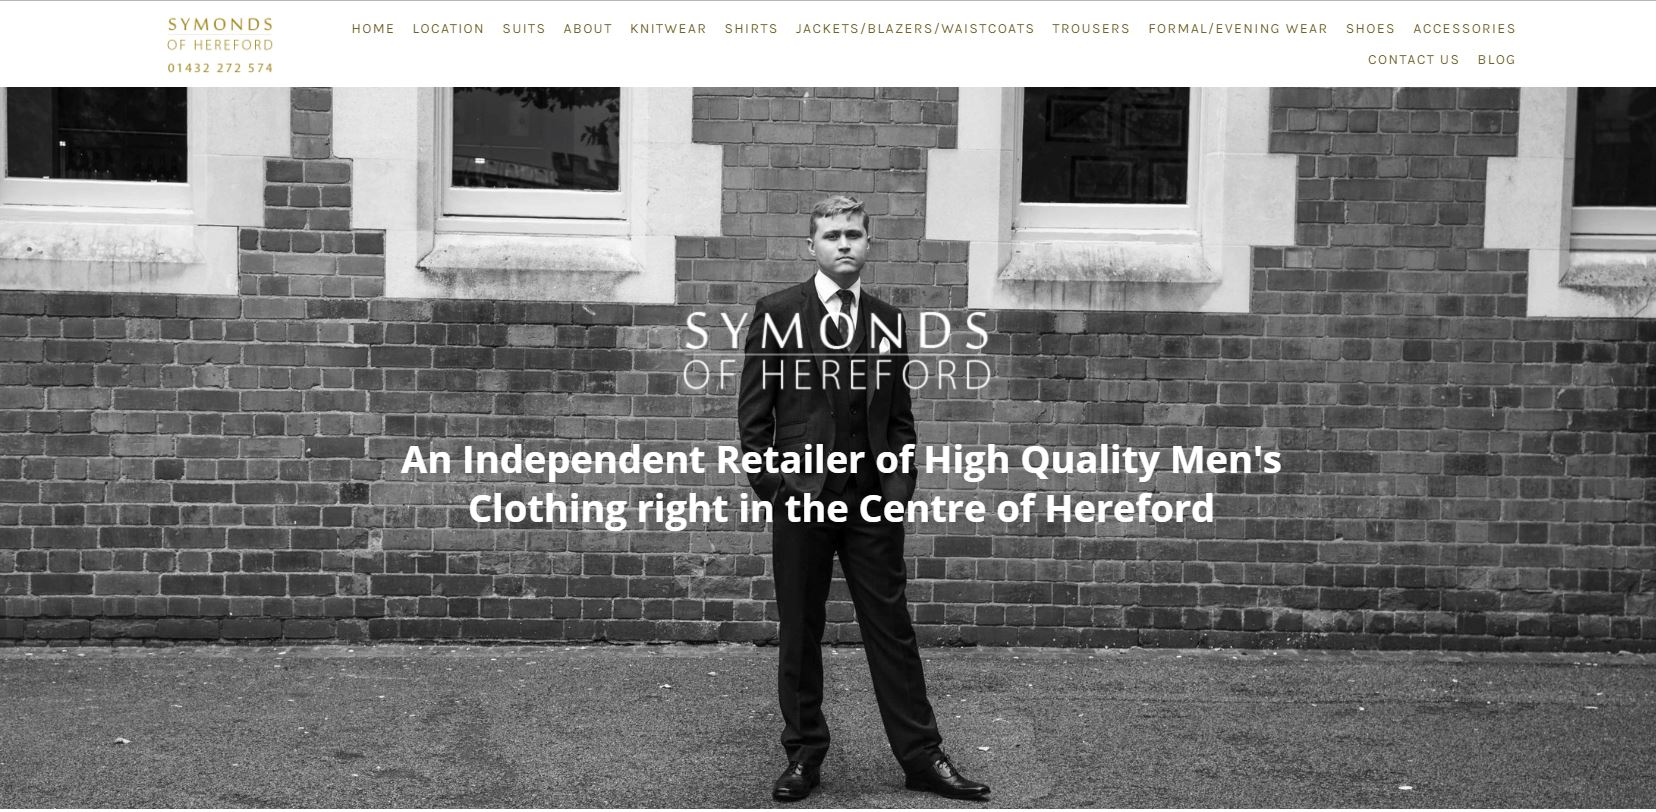 Copy of Home page of Symonds of Hereford website